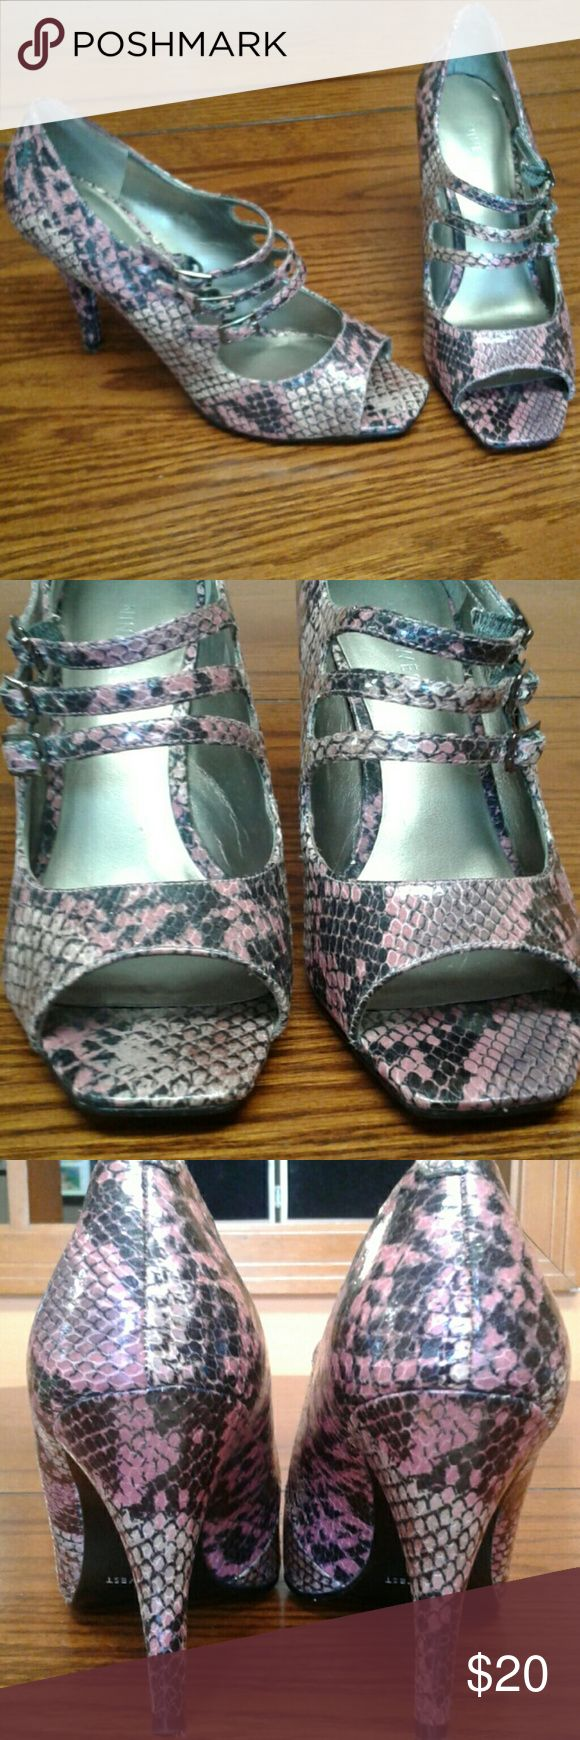 "Nine West heels Snakeskin print Nine West heels with shades of black, pink, purple and tan. Cute strap details. Approximately 4"" heel. Nine West Shoes Heels"